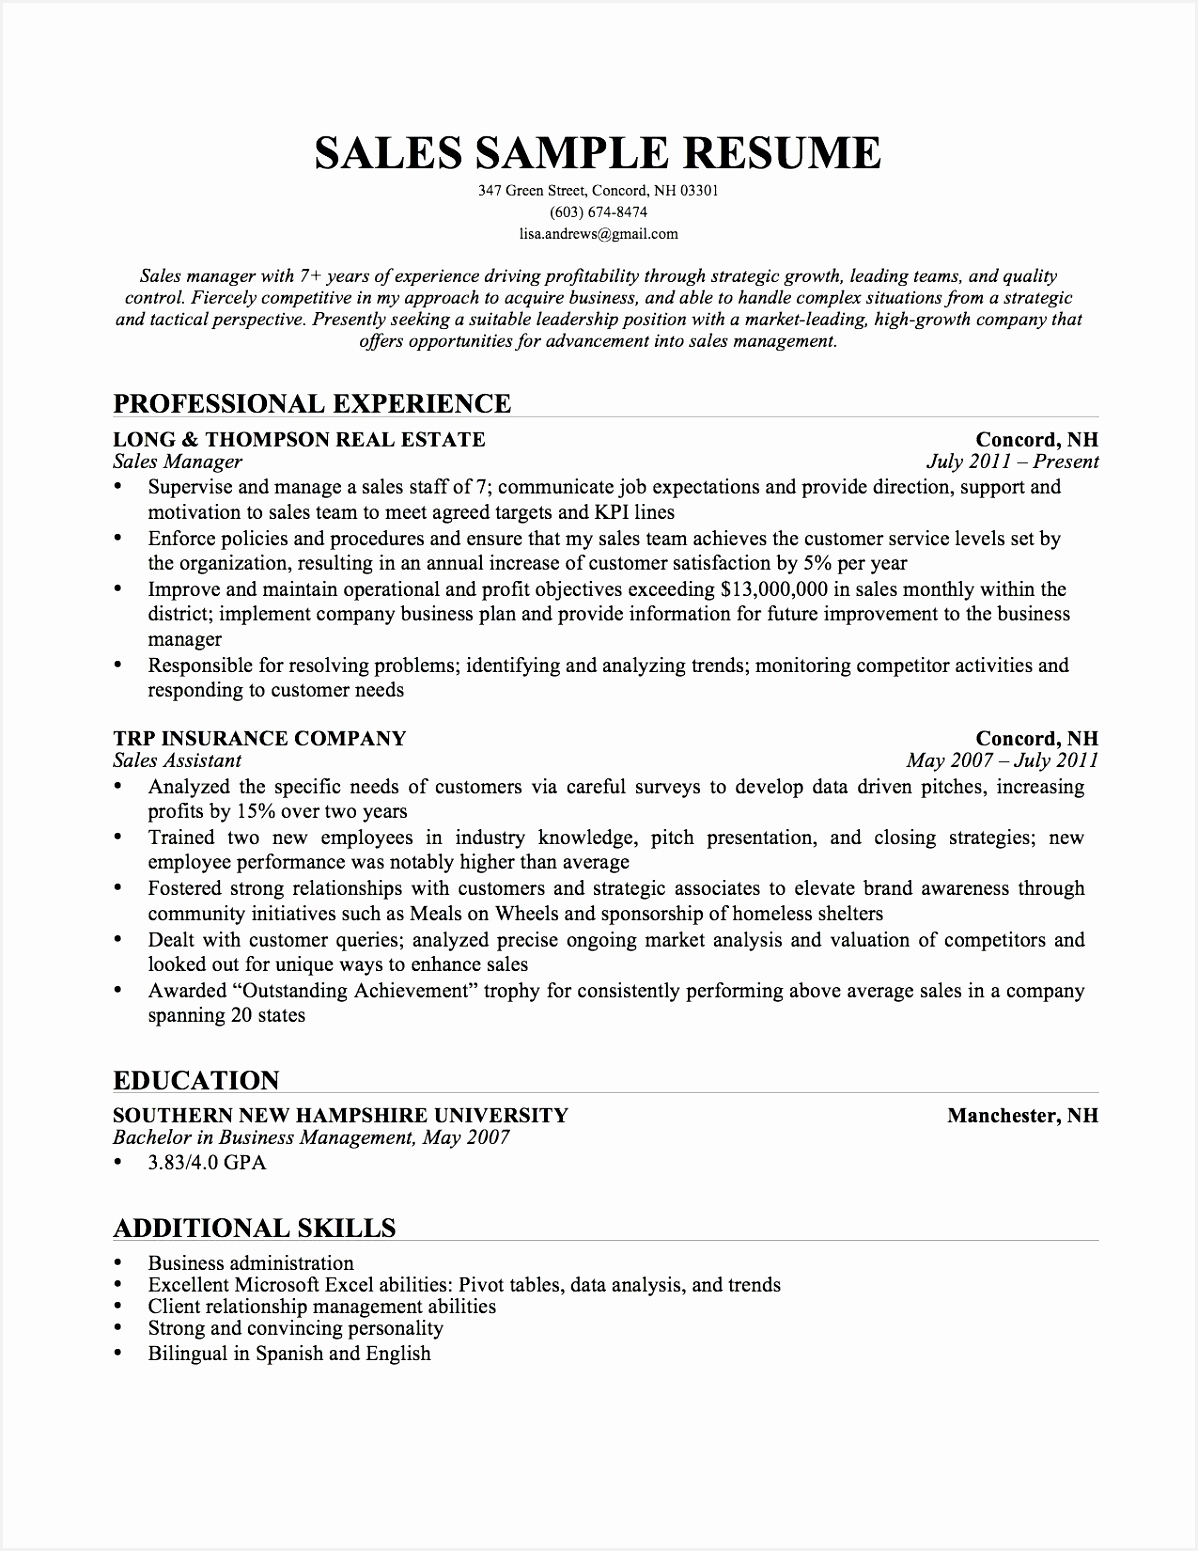 Manager assistant Sample Resume Qjane Beautiful Skills Based Resume Examples Archives Psybee New Skills Based Of Manager assistant Sample Resume E2elo Luxury assistant Manager Job Description Resume Examples 29 Bank Manager